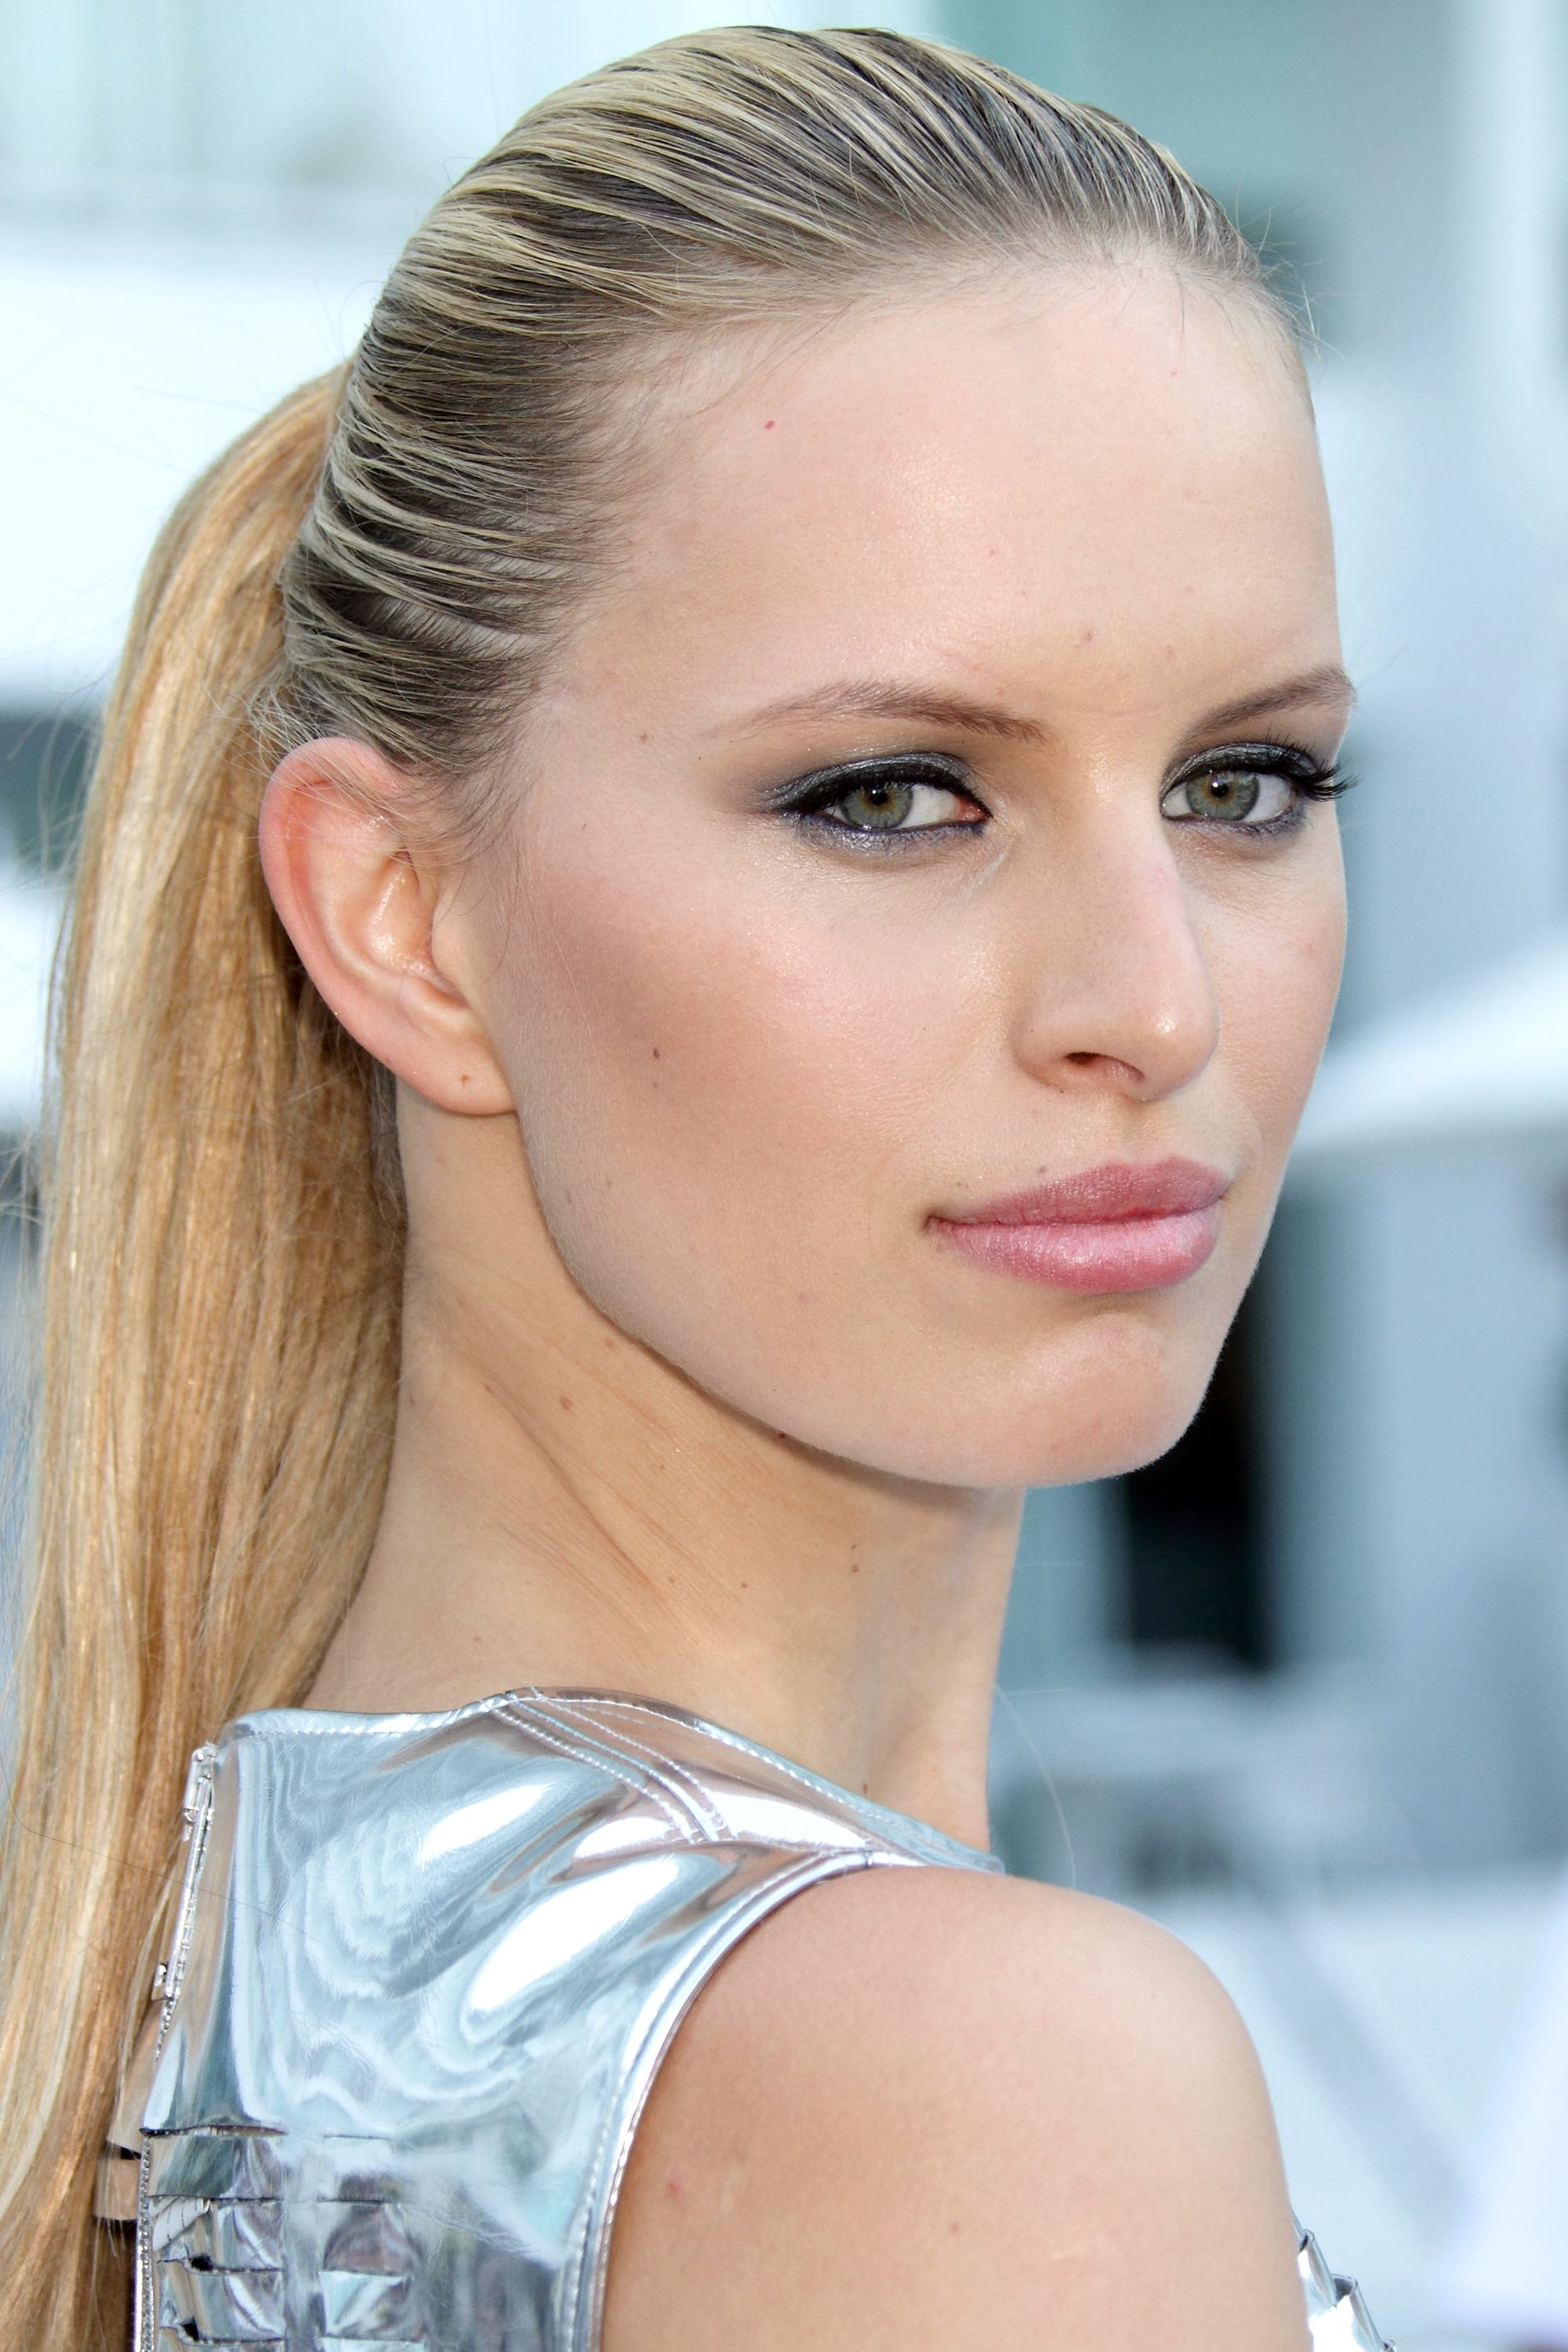 Current Poofy Pony Hairstyles With Face Framing Strands For 20 New Ways To Wear A Ponytail – Best Celebrity Ponytails Of (View 7 of 20)